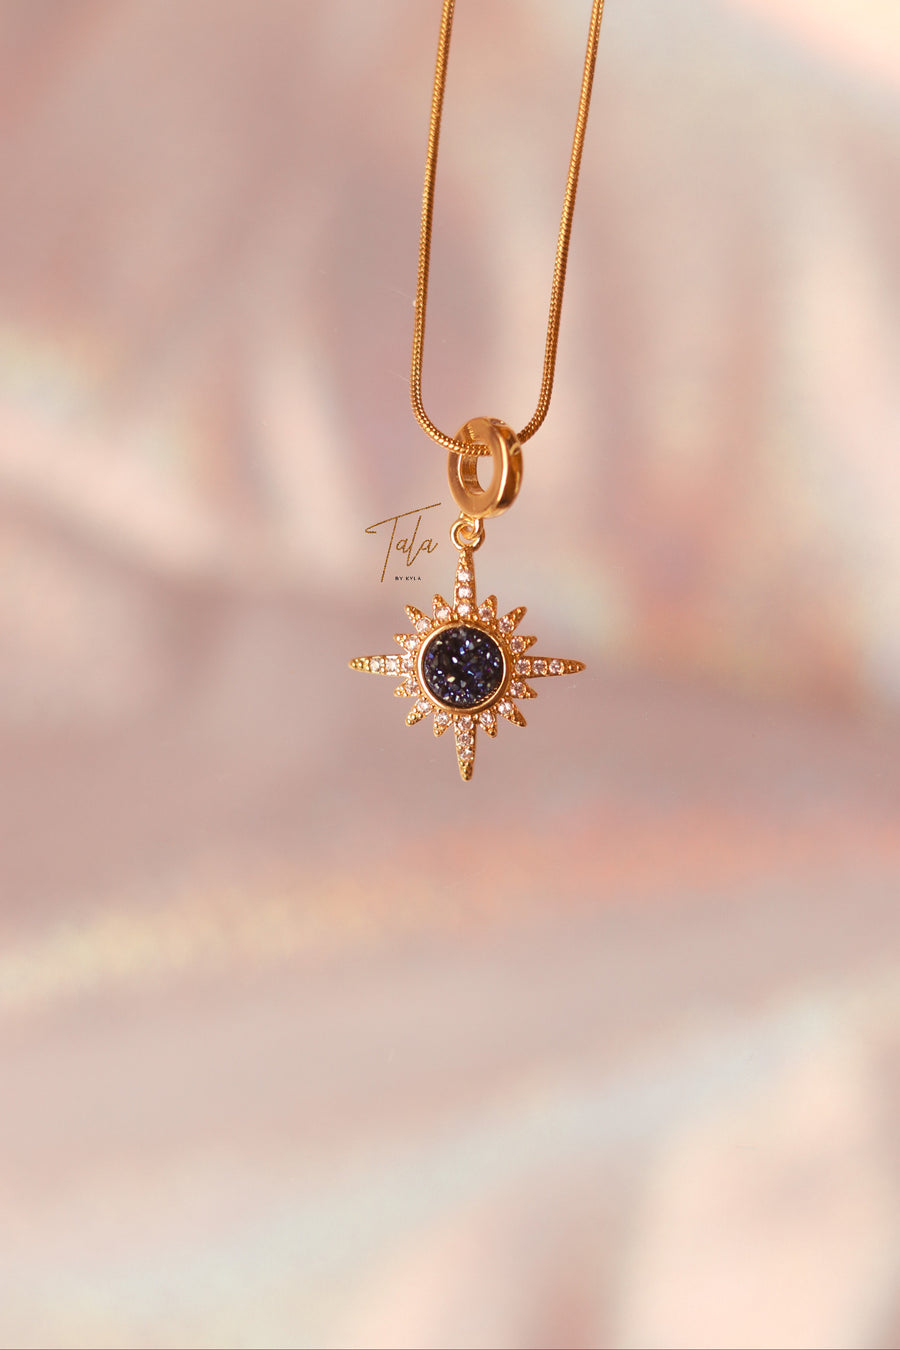 Tala by Kyla Wishing Star Luster Necklaces